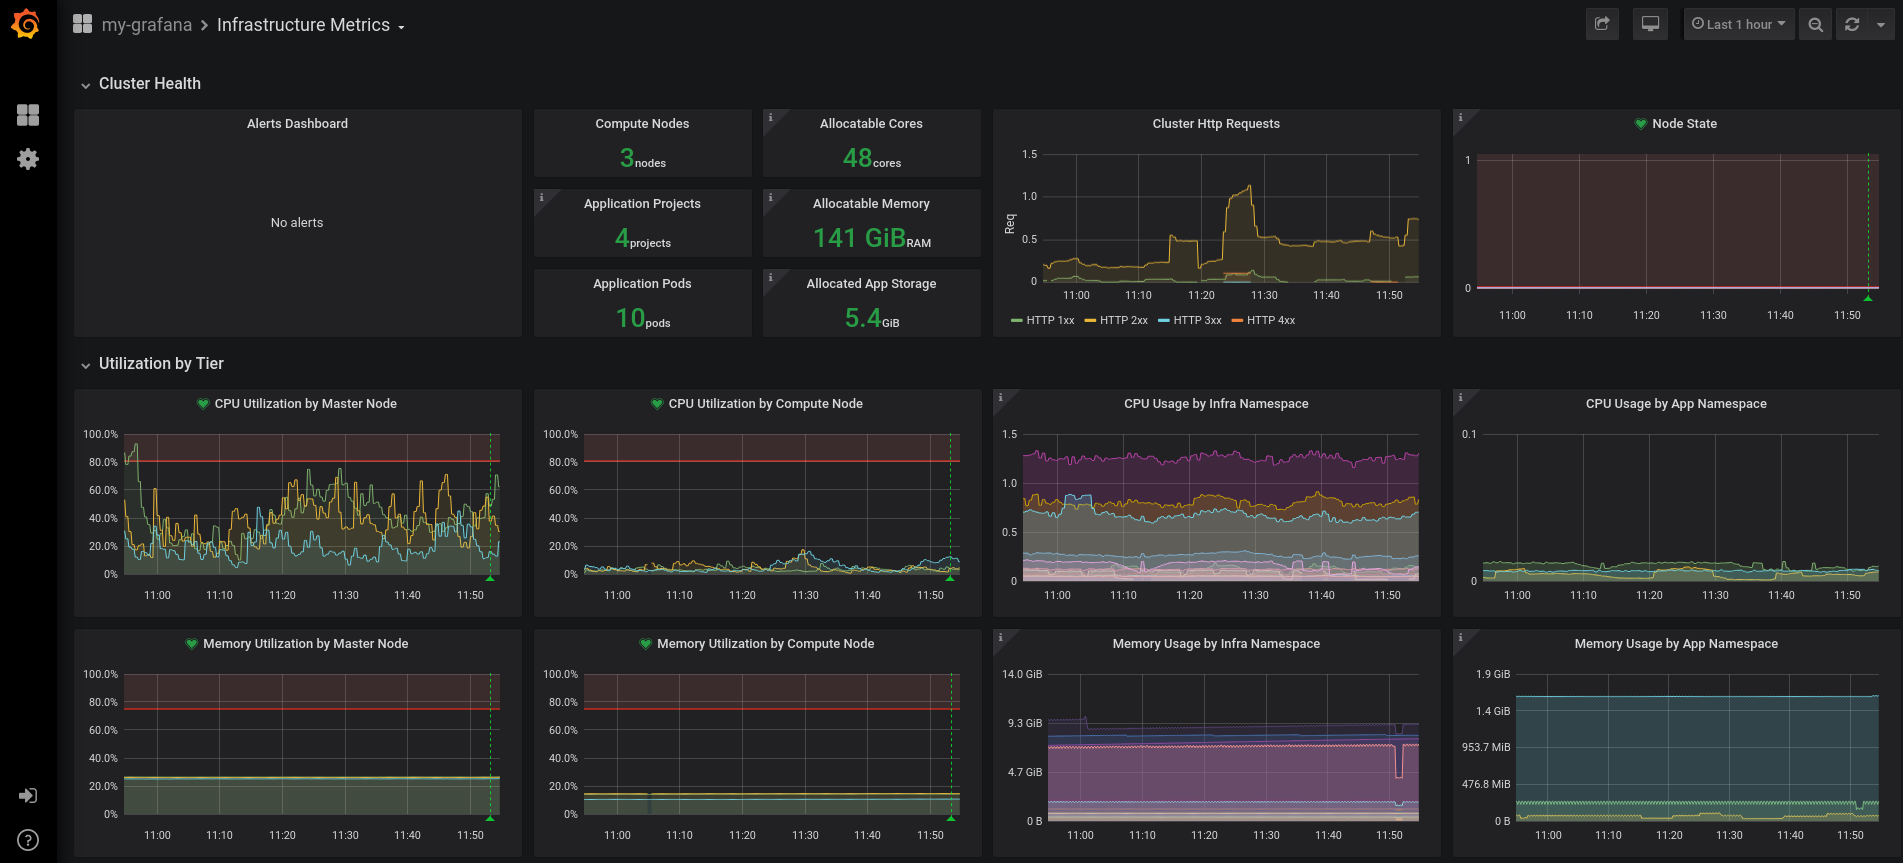 Figure 3: Custom Grafana dashboard displaying custom metrics